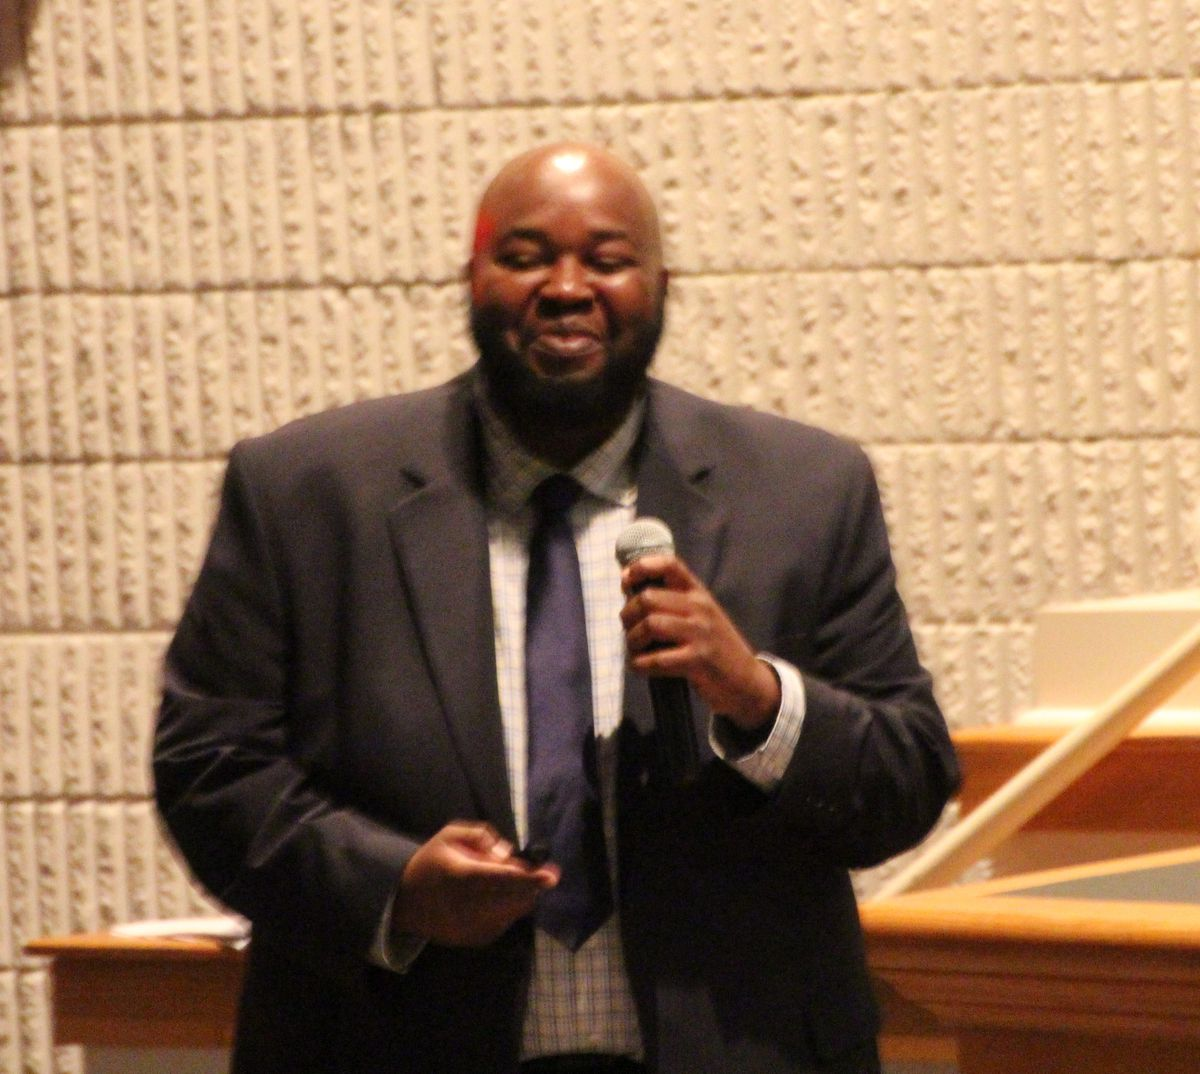 National Teacher of the Year Rodney Robinson speaks to teachers about how to rethink school discipline at teacher training event on July 16, 2019. Robinson teaches social studies at the Virgie Binford Education Center, located inside the Richmond Juvenile Detention Center in Virginia.